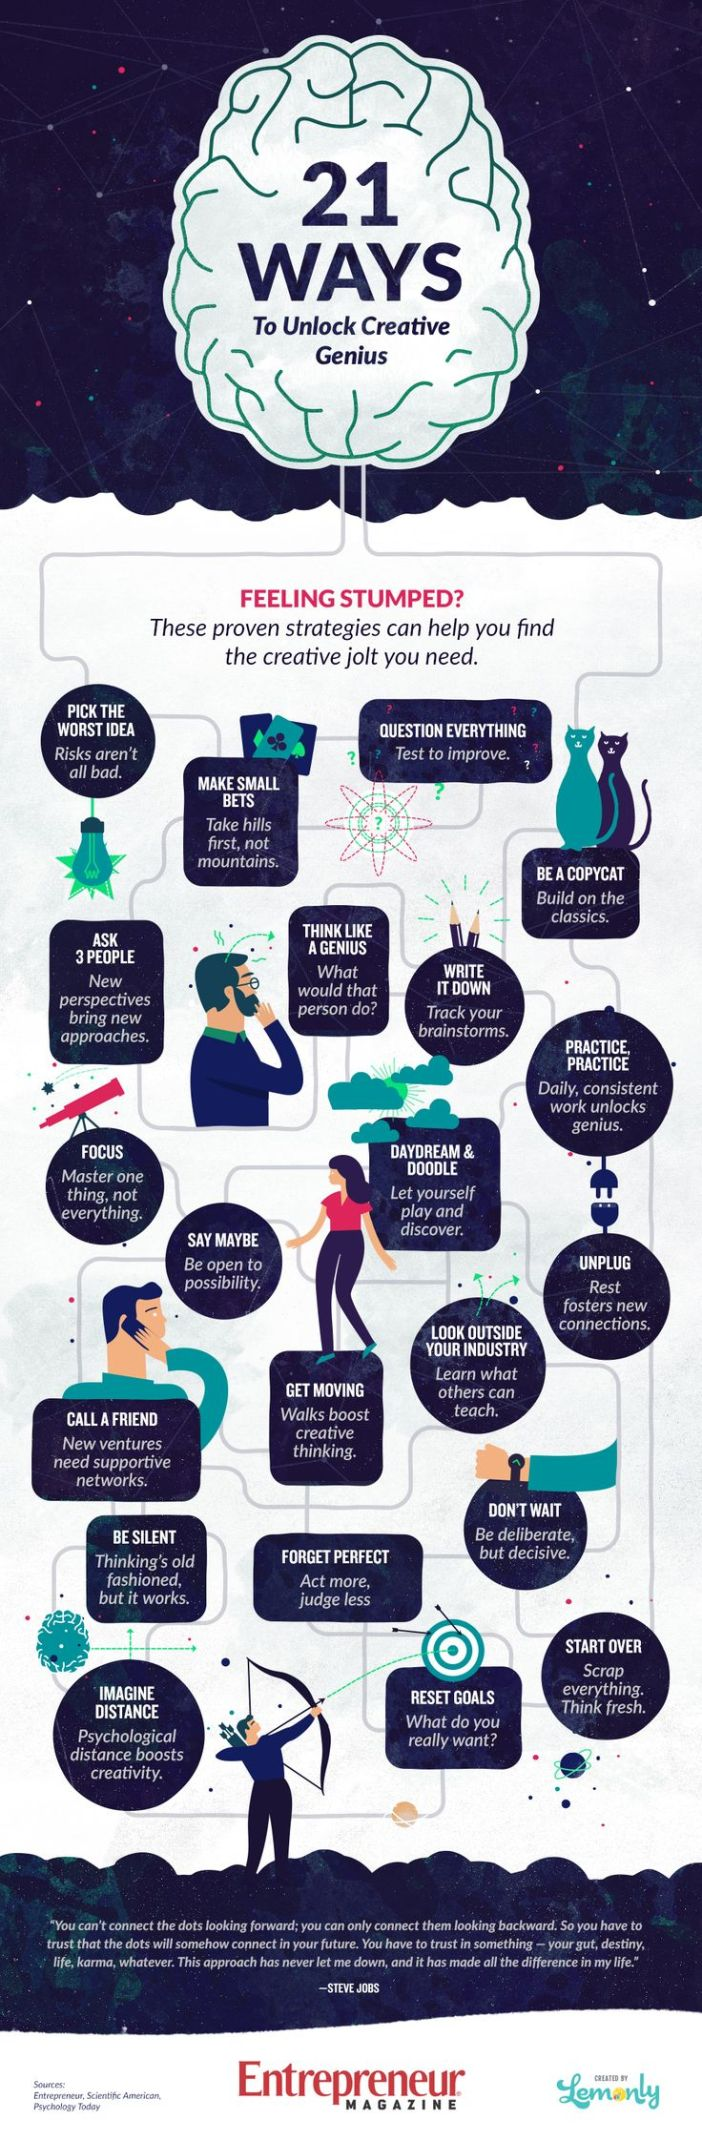 21 Ways to Get Inspired (Infographic):